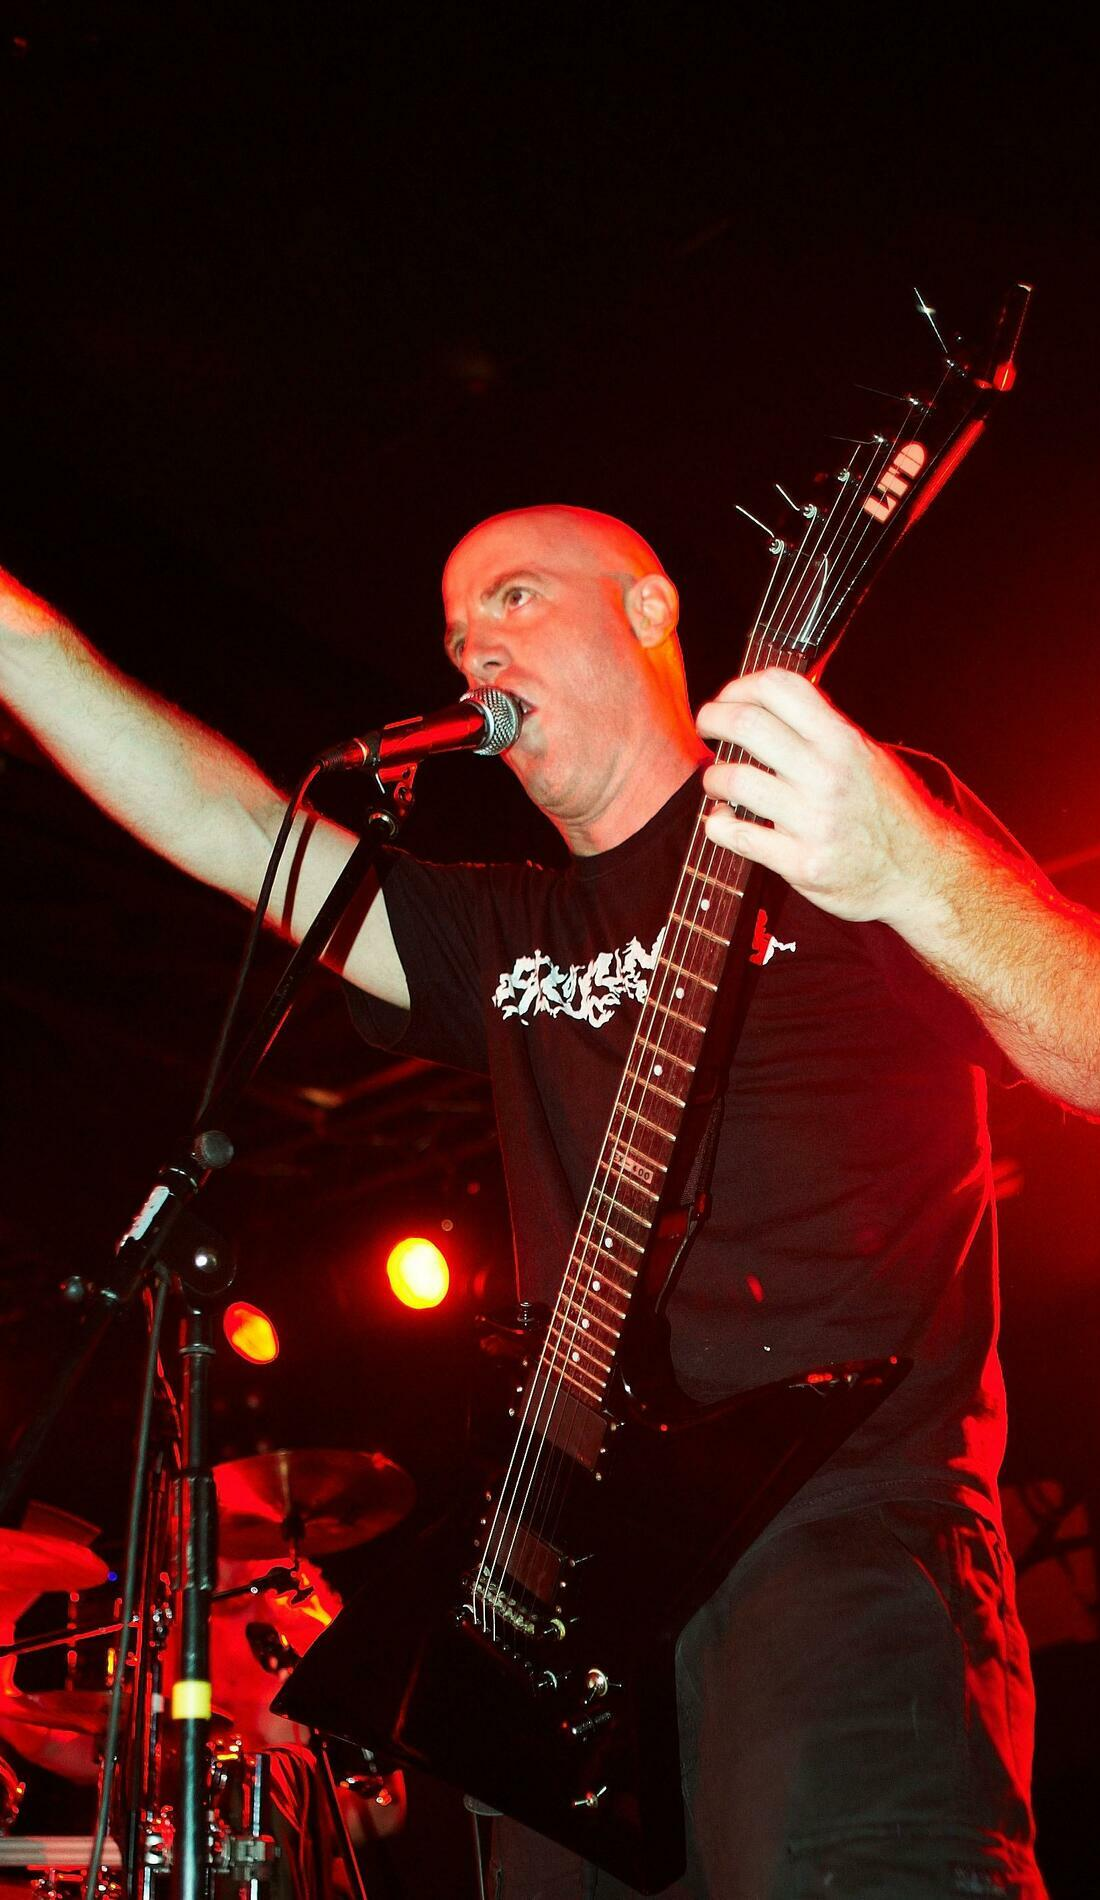 A Dying Fetus live event